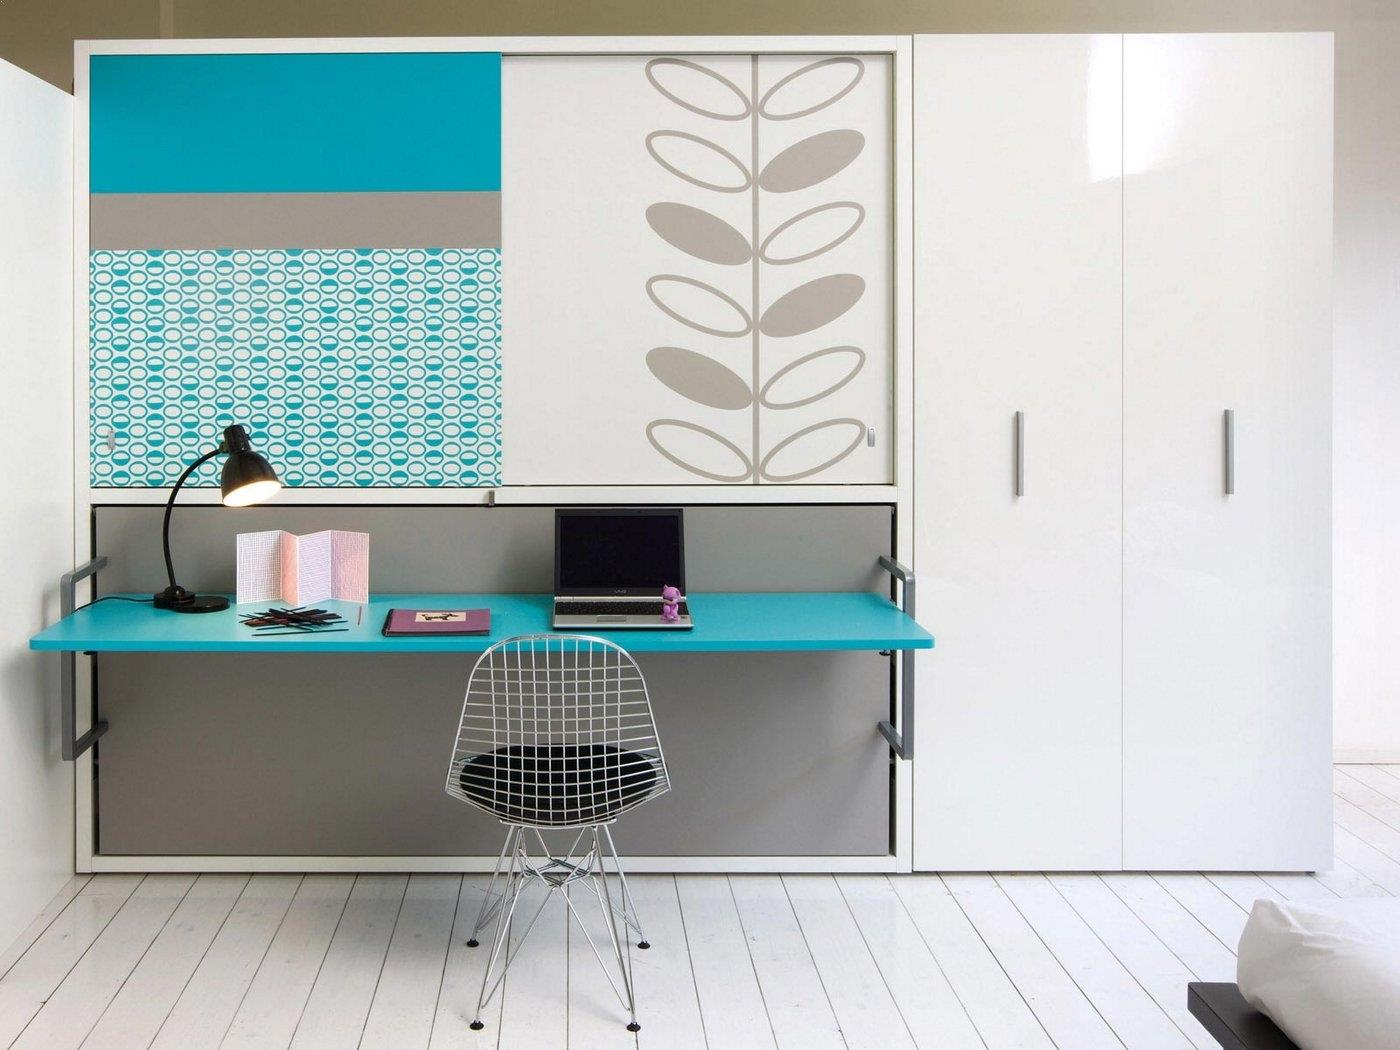 42-mibilier-inteligent-design-interior-smart